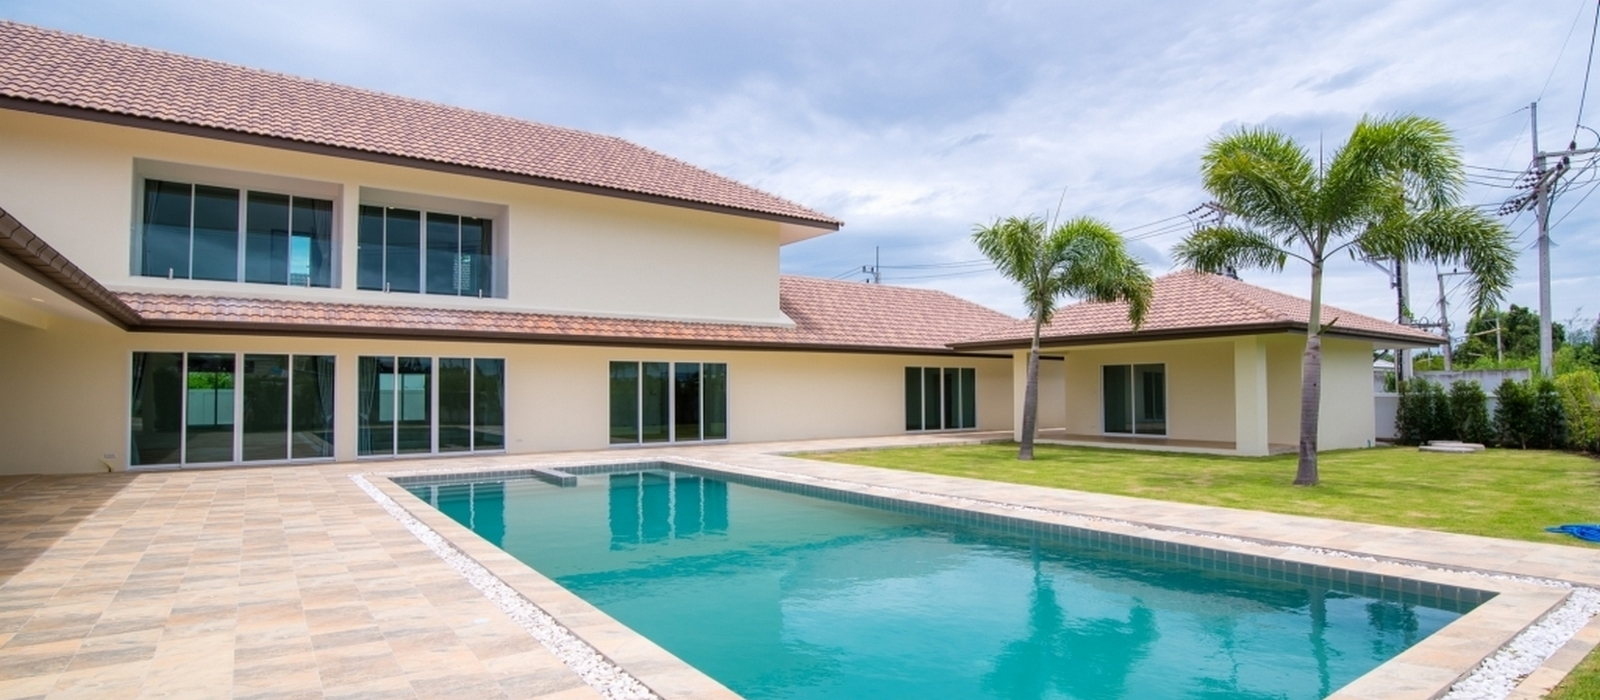 Brand new Luxury Pool Villas in Hua Hin at Country Side